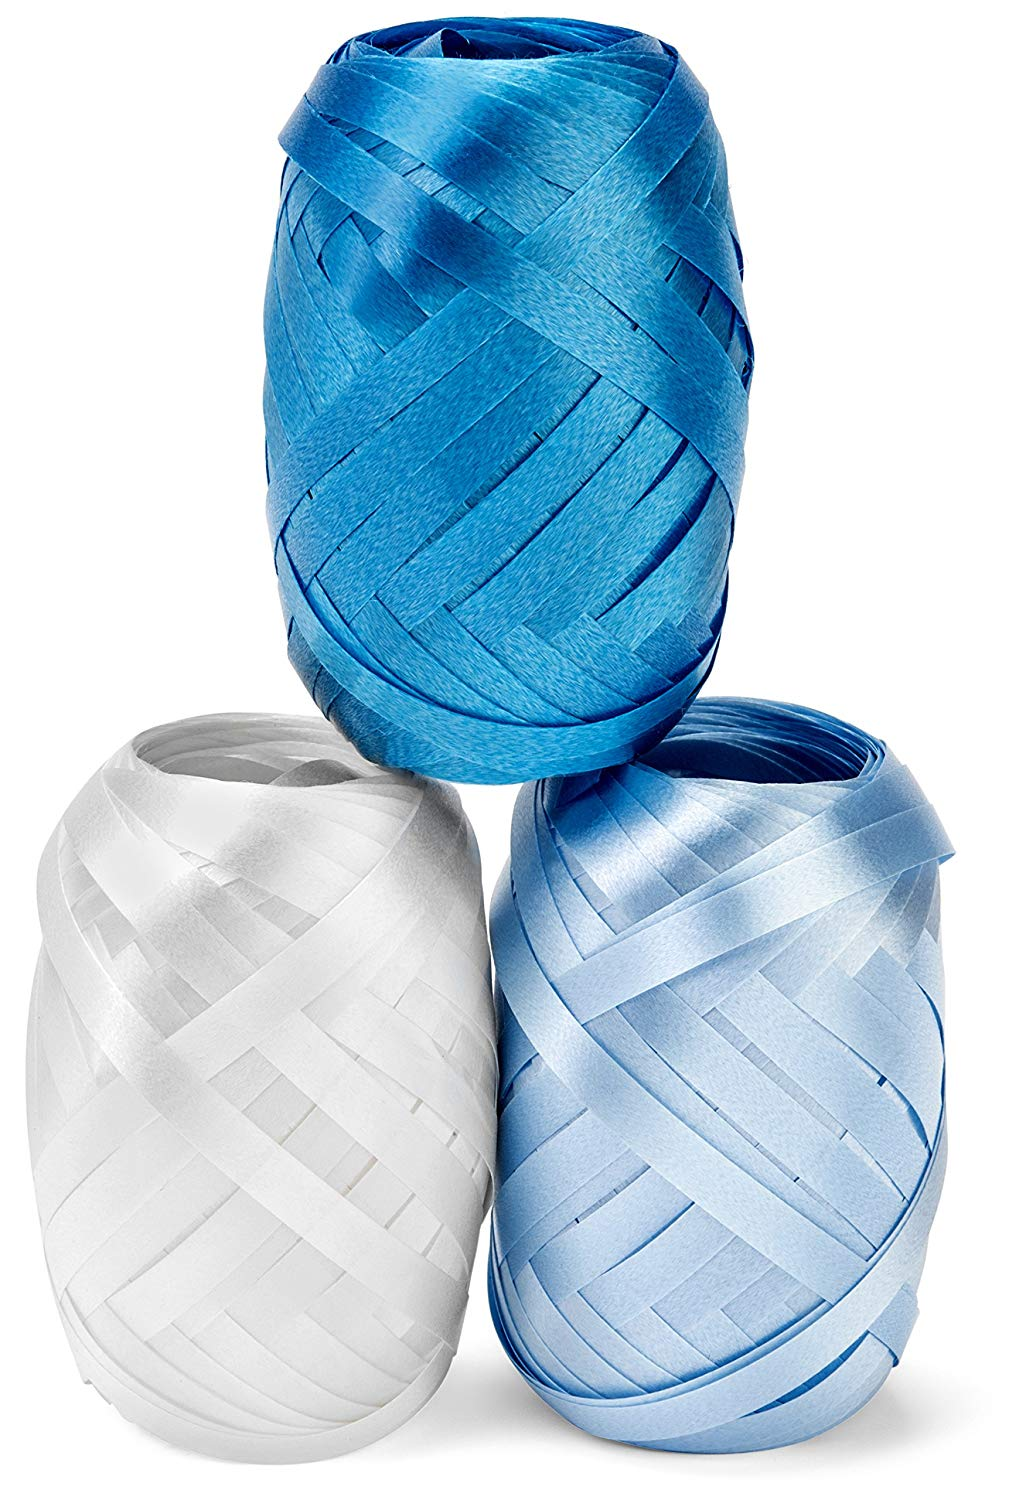 Curling Ribbon Three Assorted Colors: 3/16 Inch x 22 Yard - 60 Total Meters - Extra Long Powder Blue, Baby Blue, White Ribbon Egg 3 Pack in Storage Organizer for Decorative Gift Wrapping & Balloons